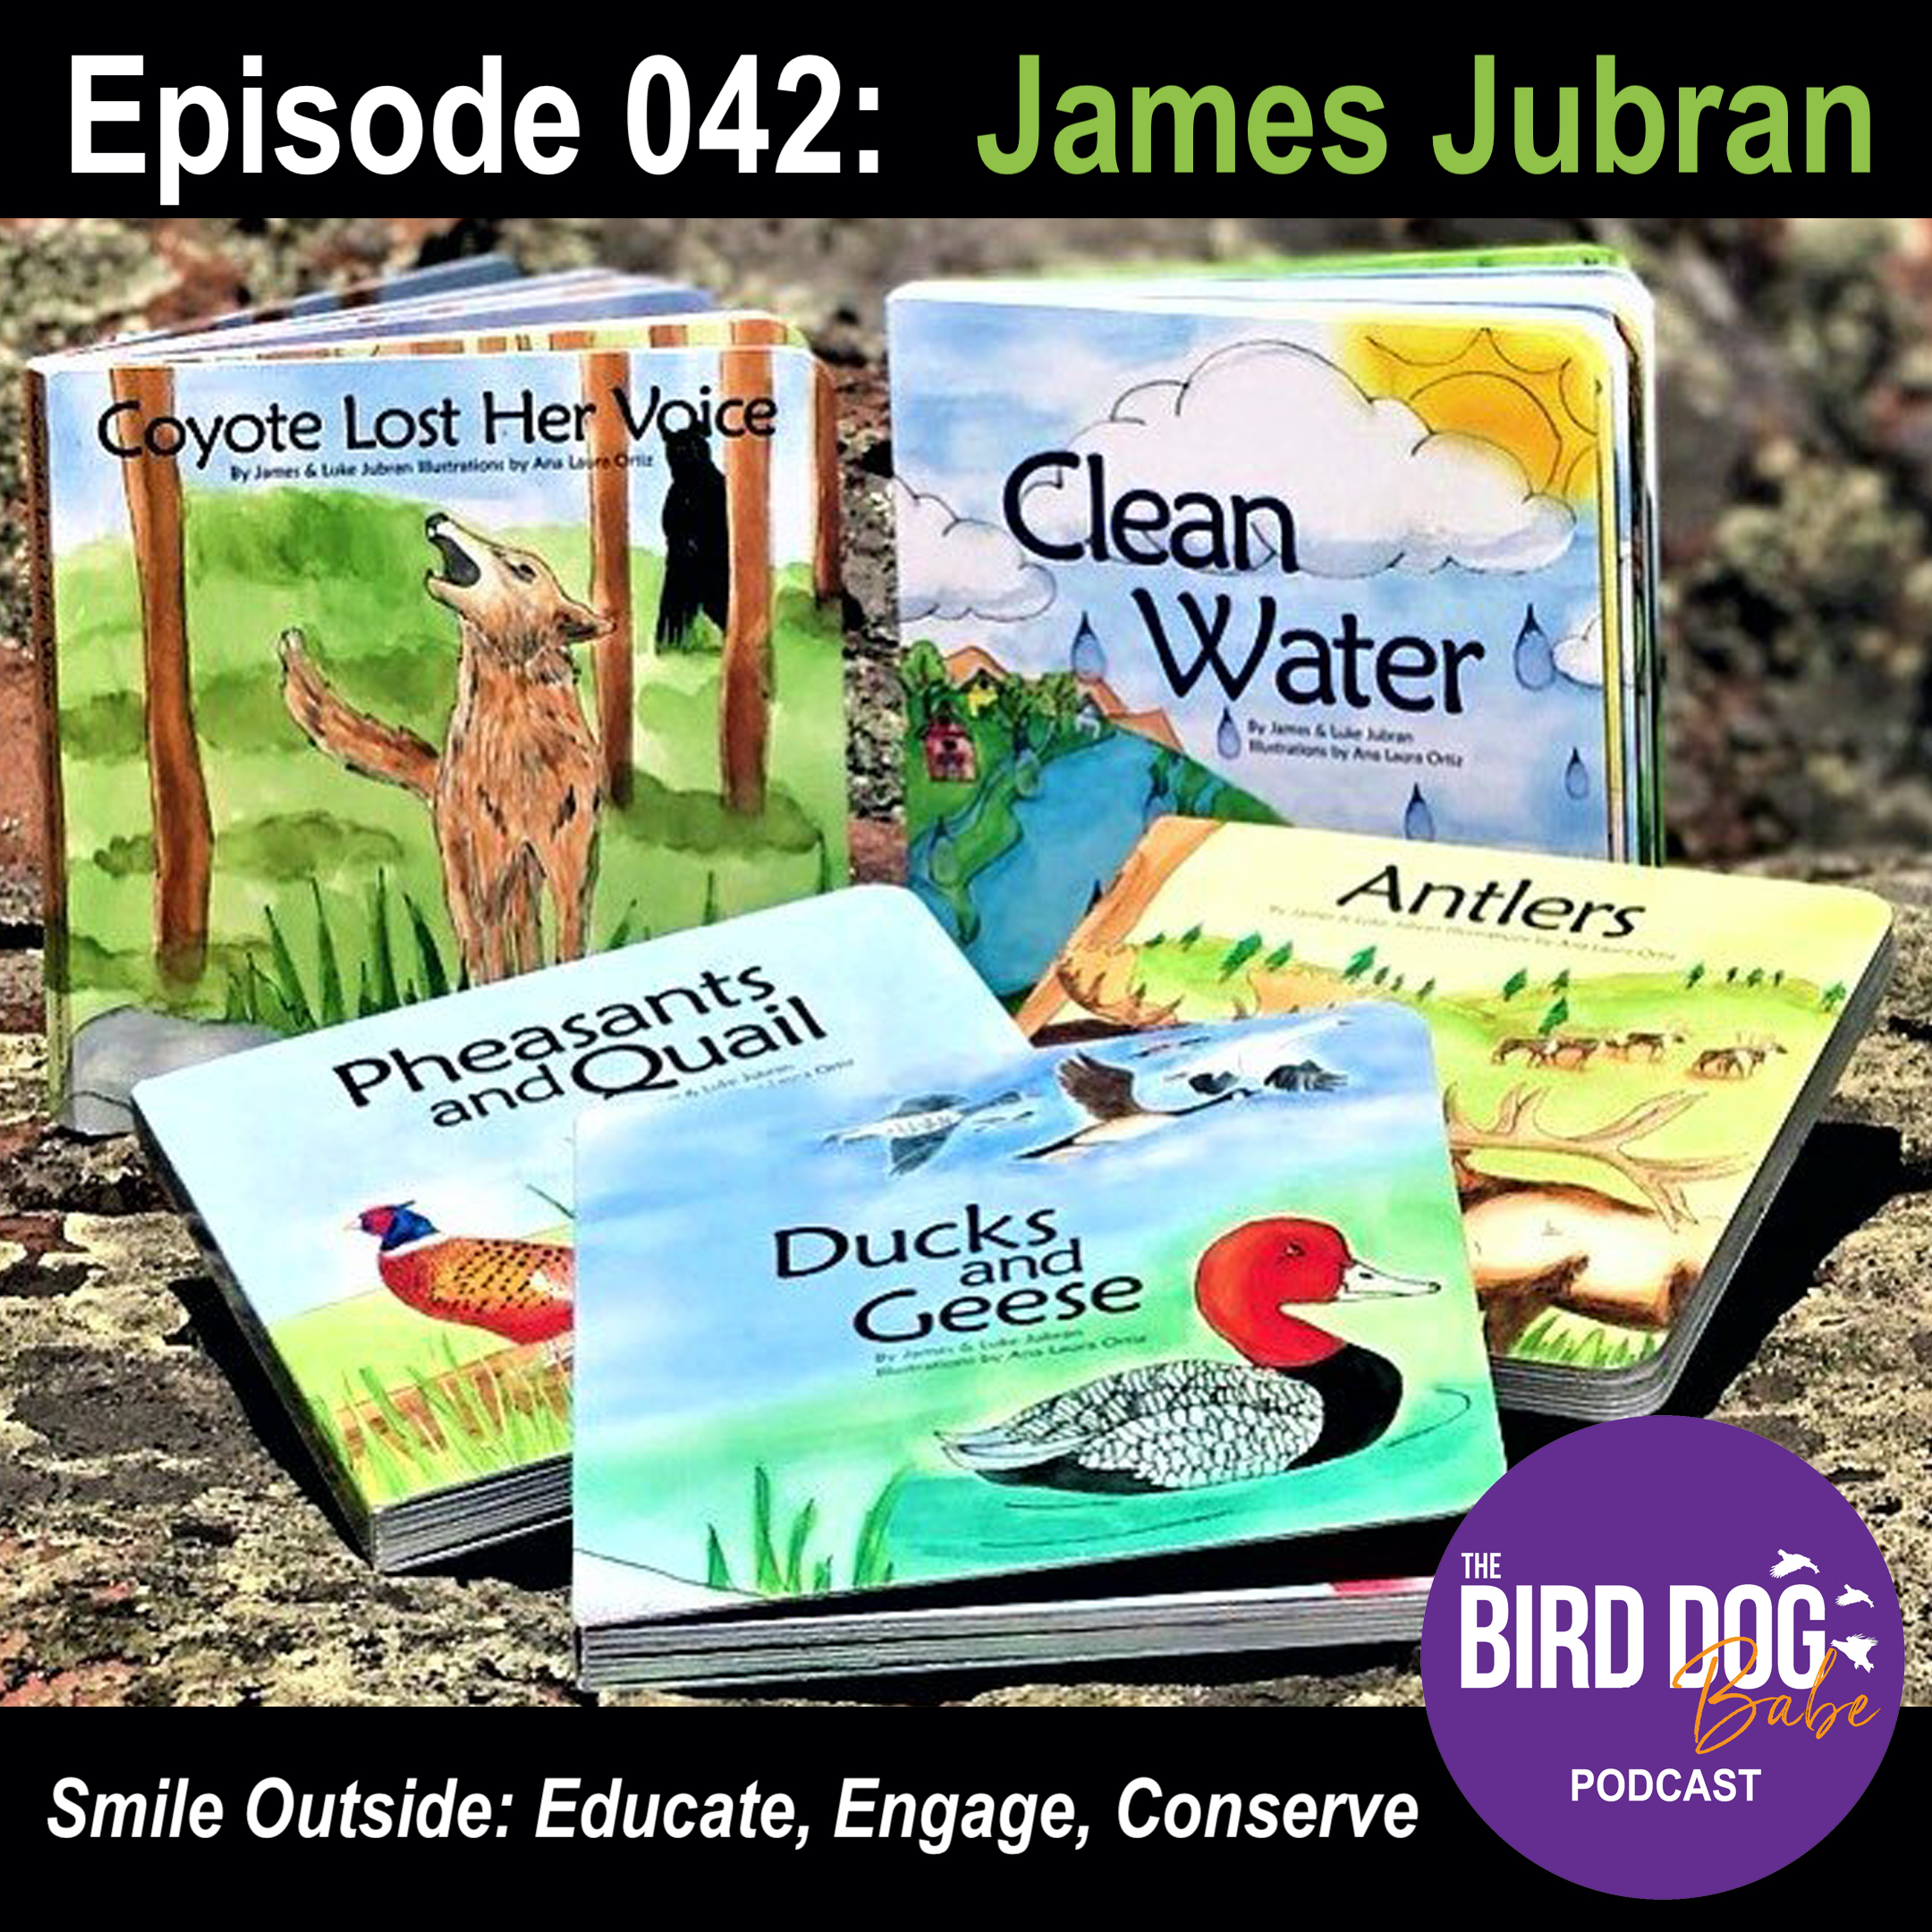 Episode 042: Smile Outside: Educate, Engage, Conserve w/ James Jubran